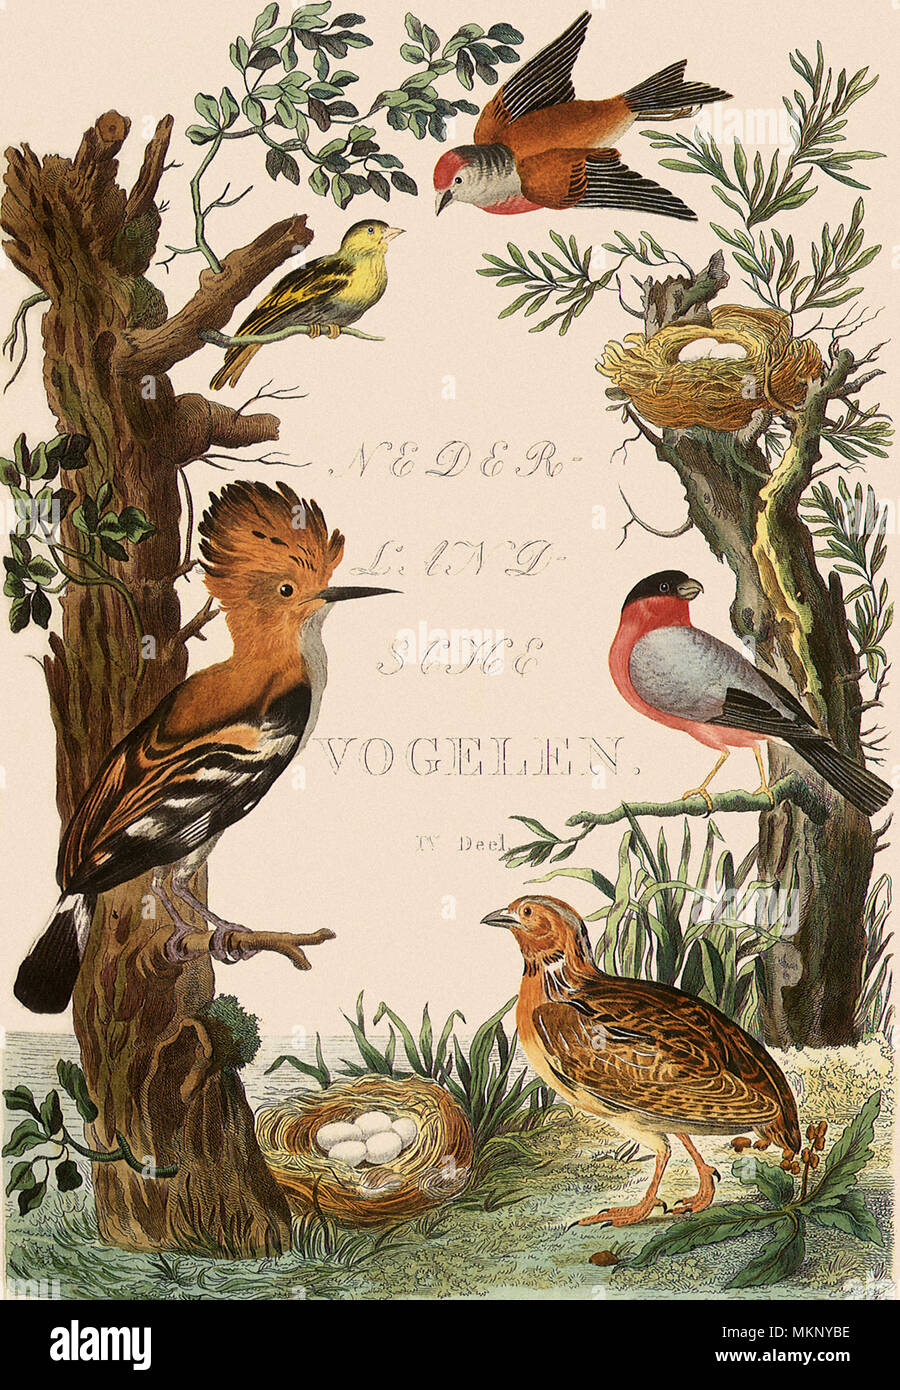 Frontispiece with Assorted  Birds - Stock Image